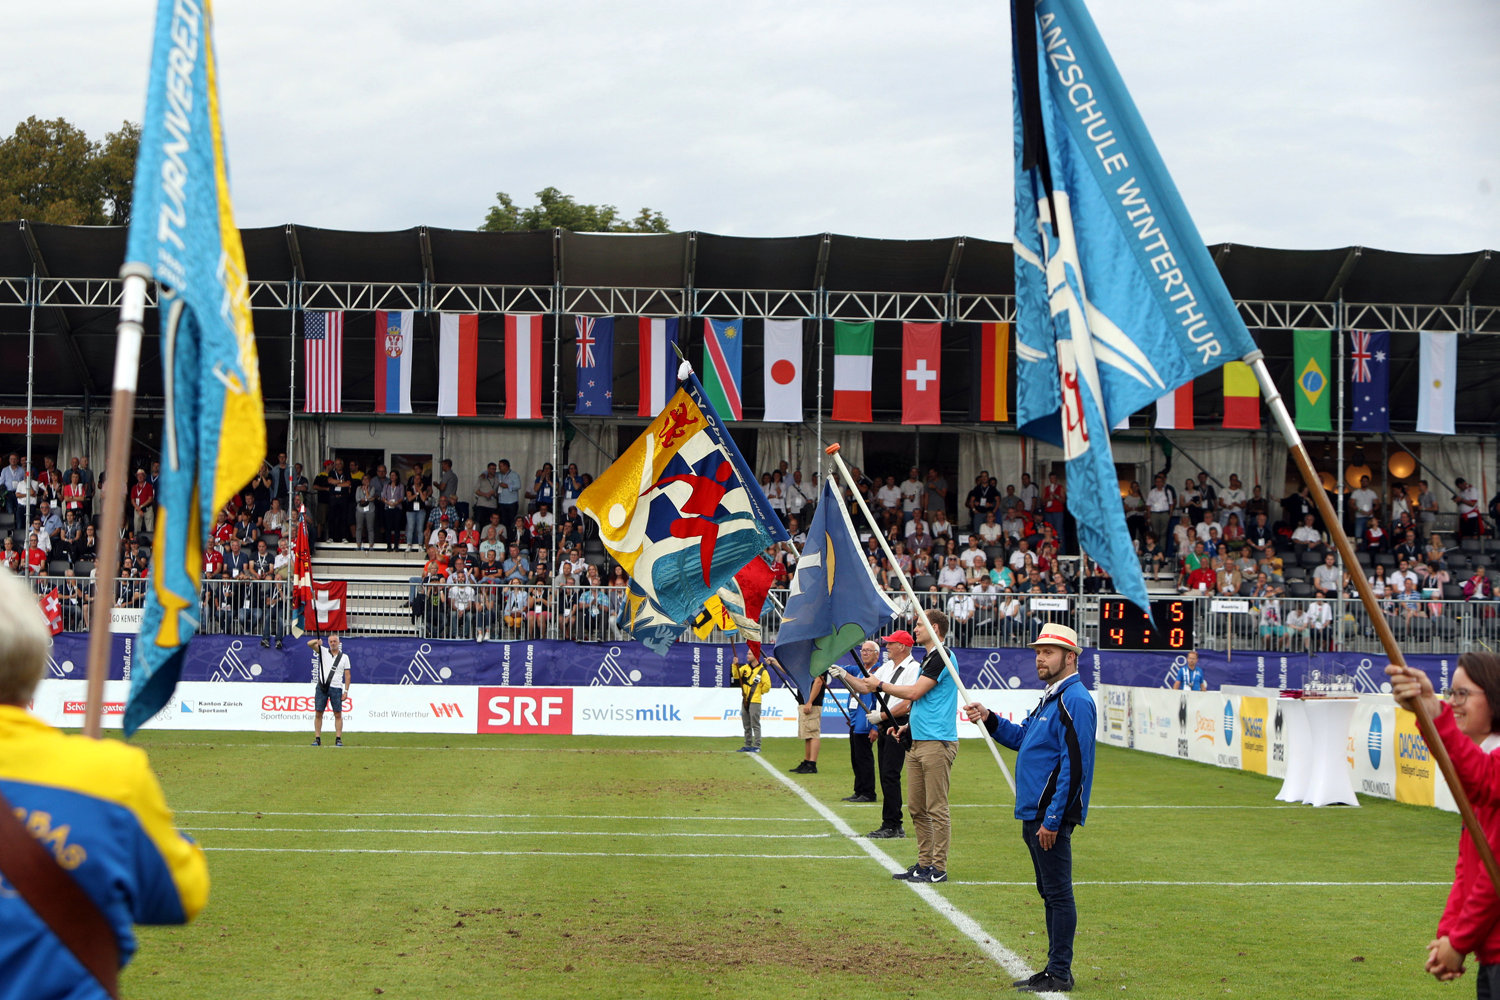 Tolle Faustball-WM in Winterthur